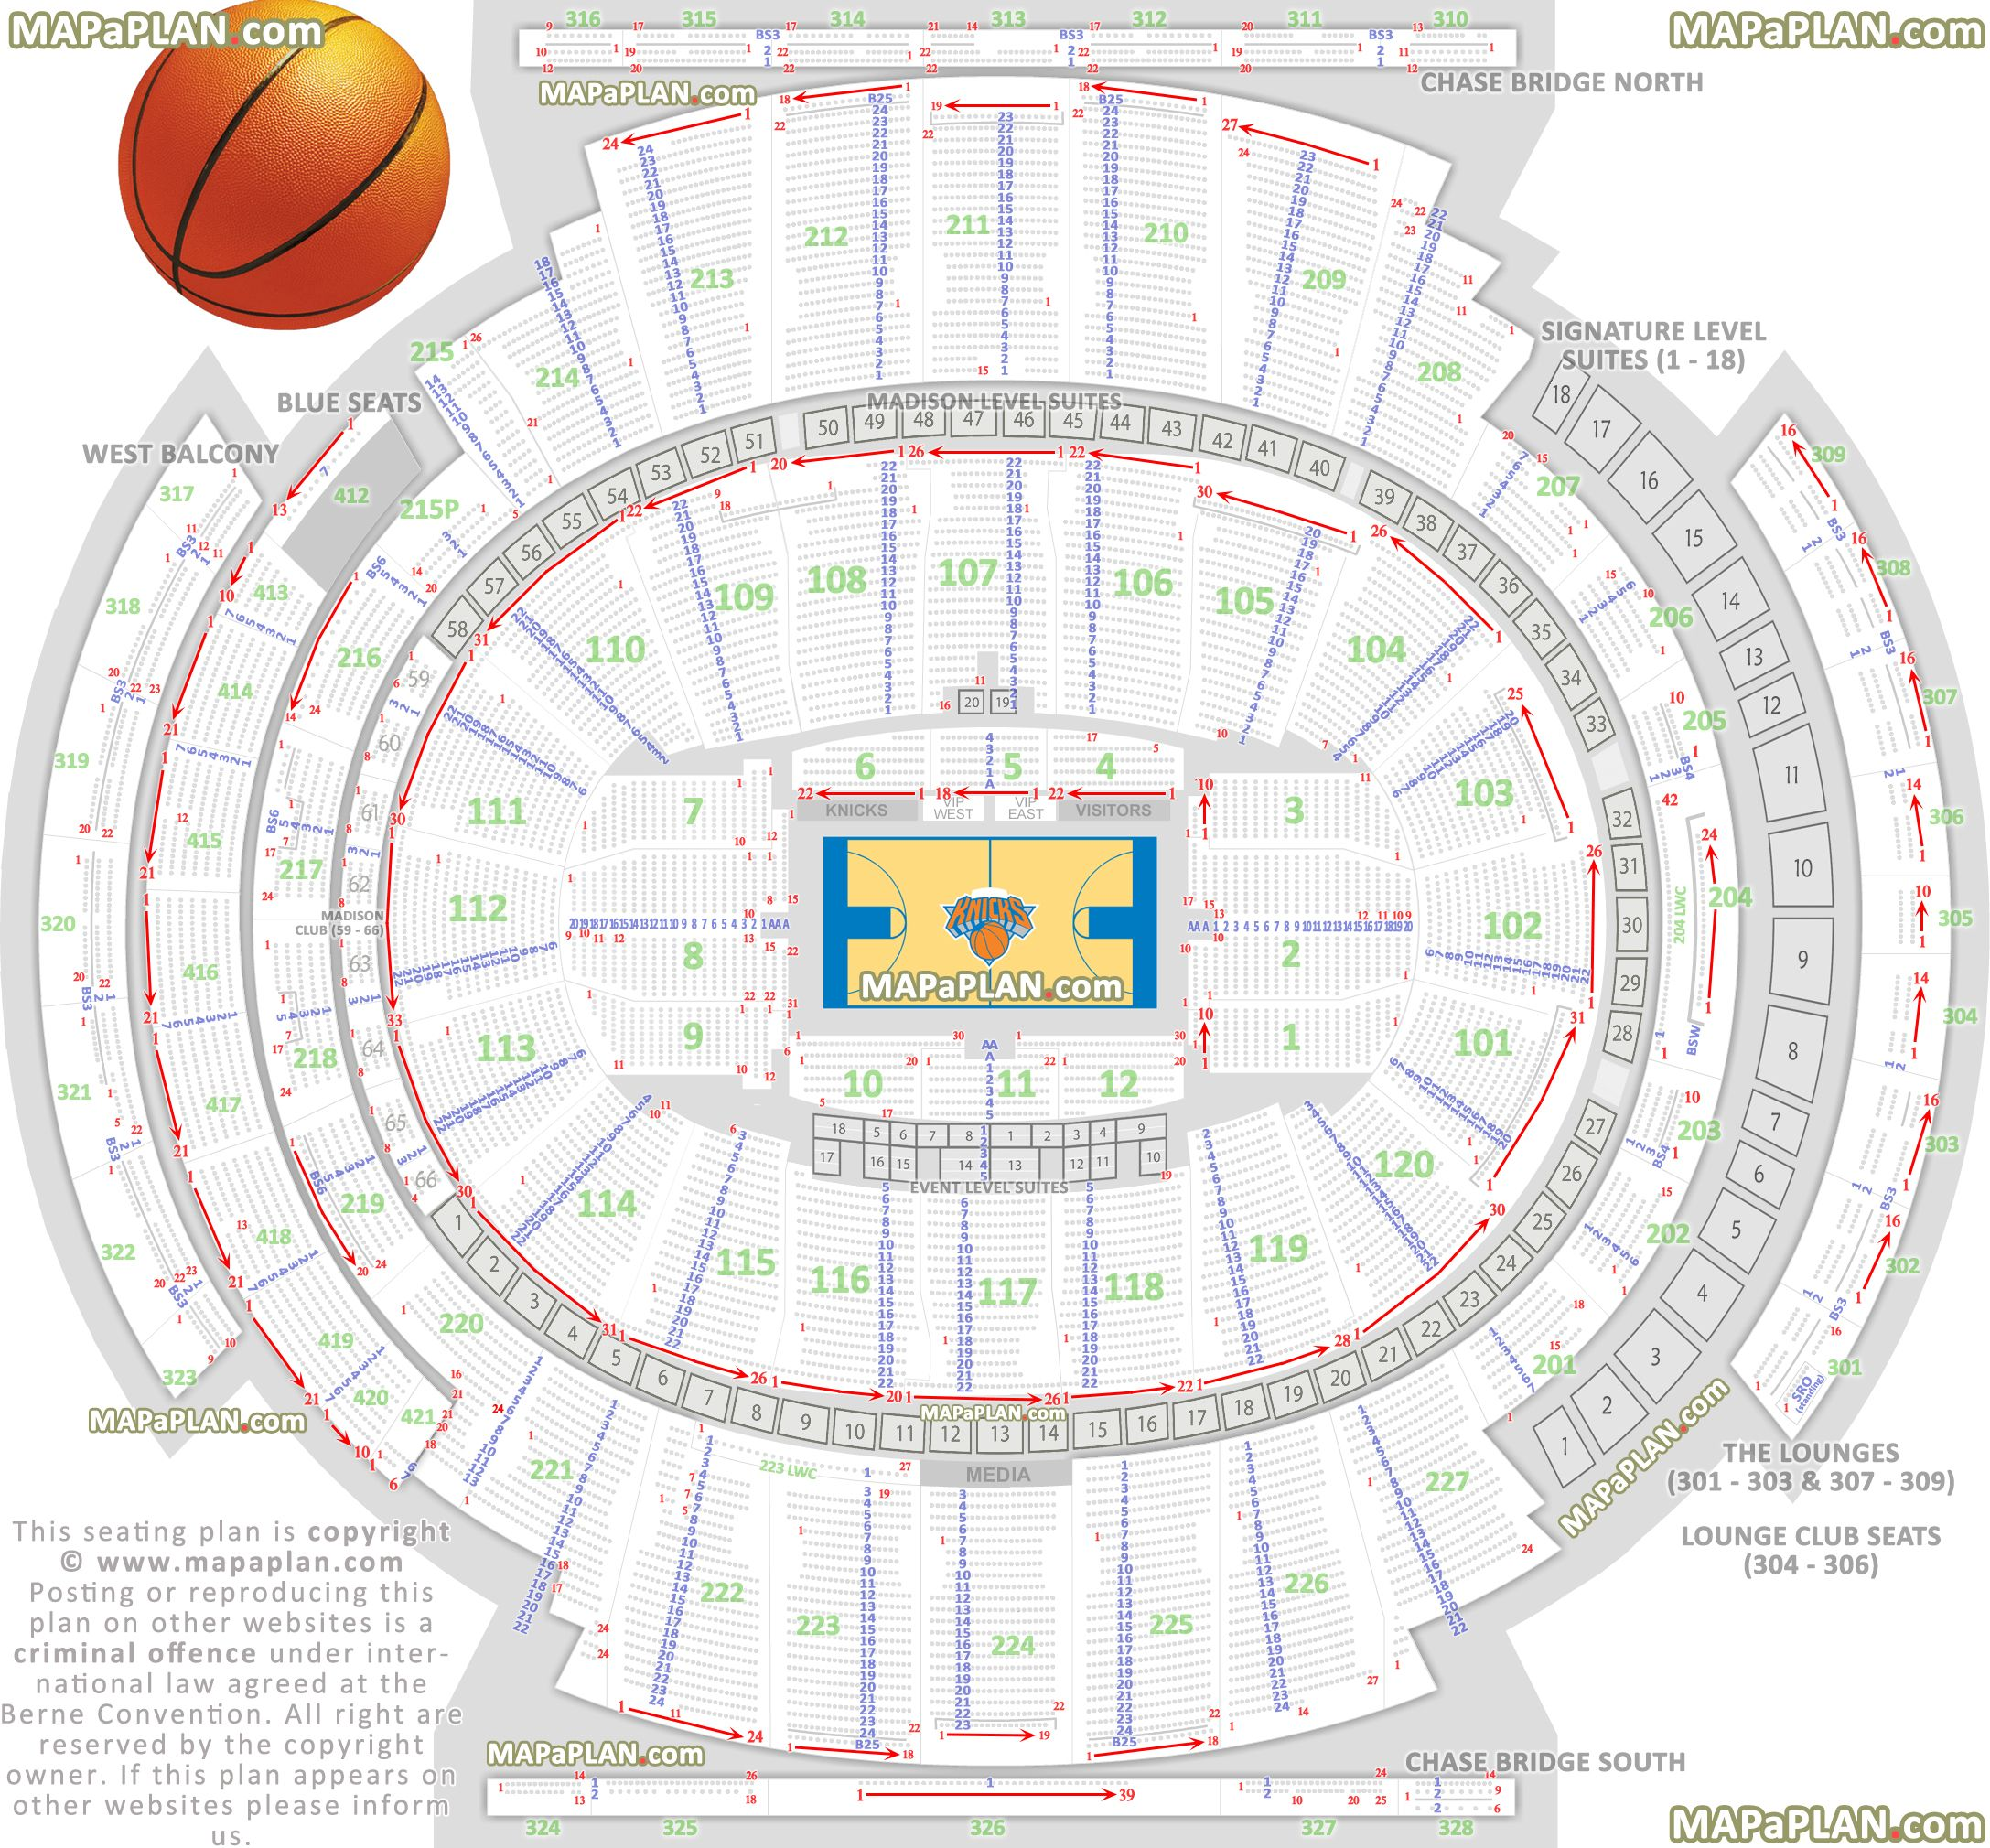 Madison Square Garden Seating Chart Detailed Seats Rows And Sections Numbers Knicks Madison